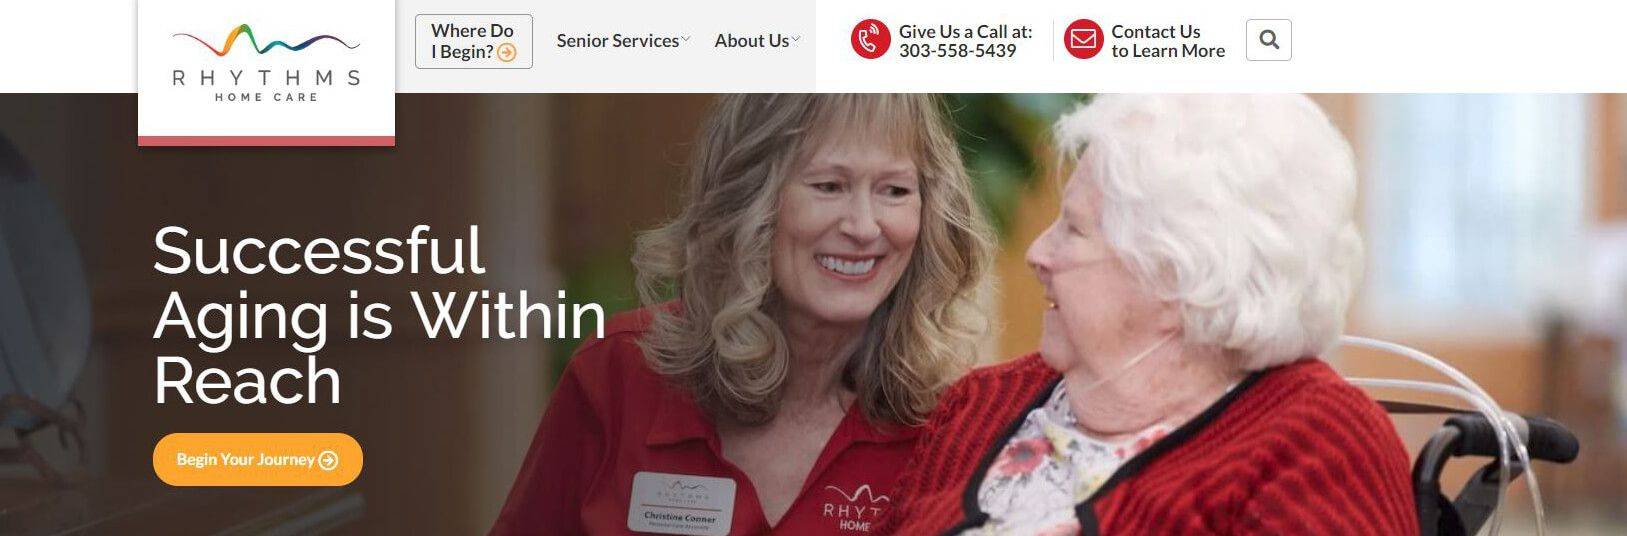 rhythms home care homepage